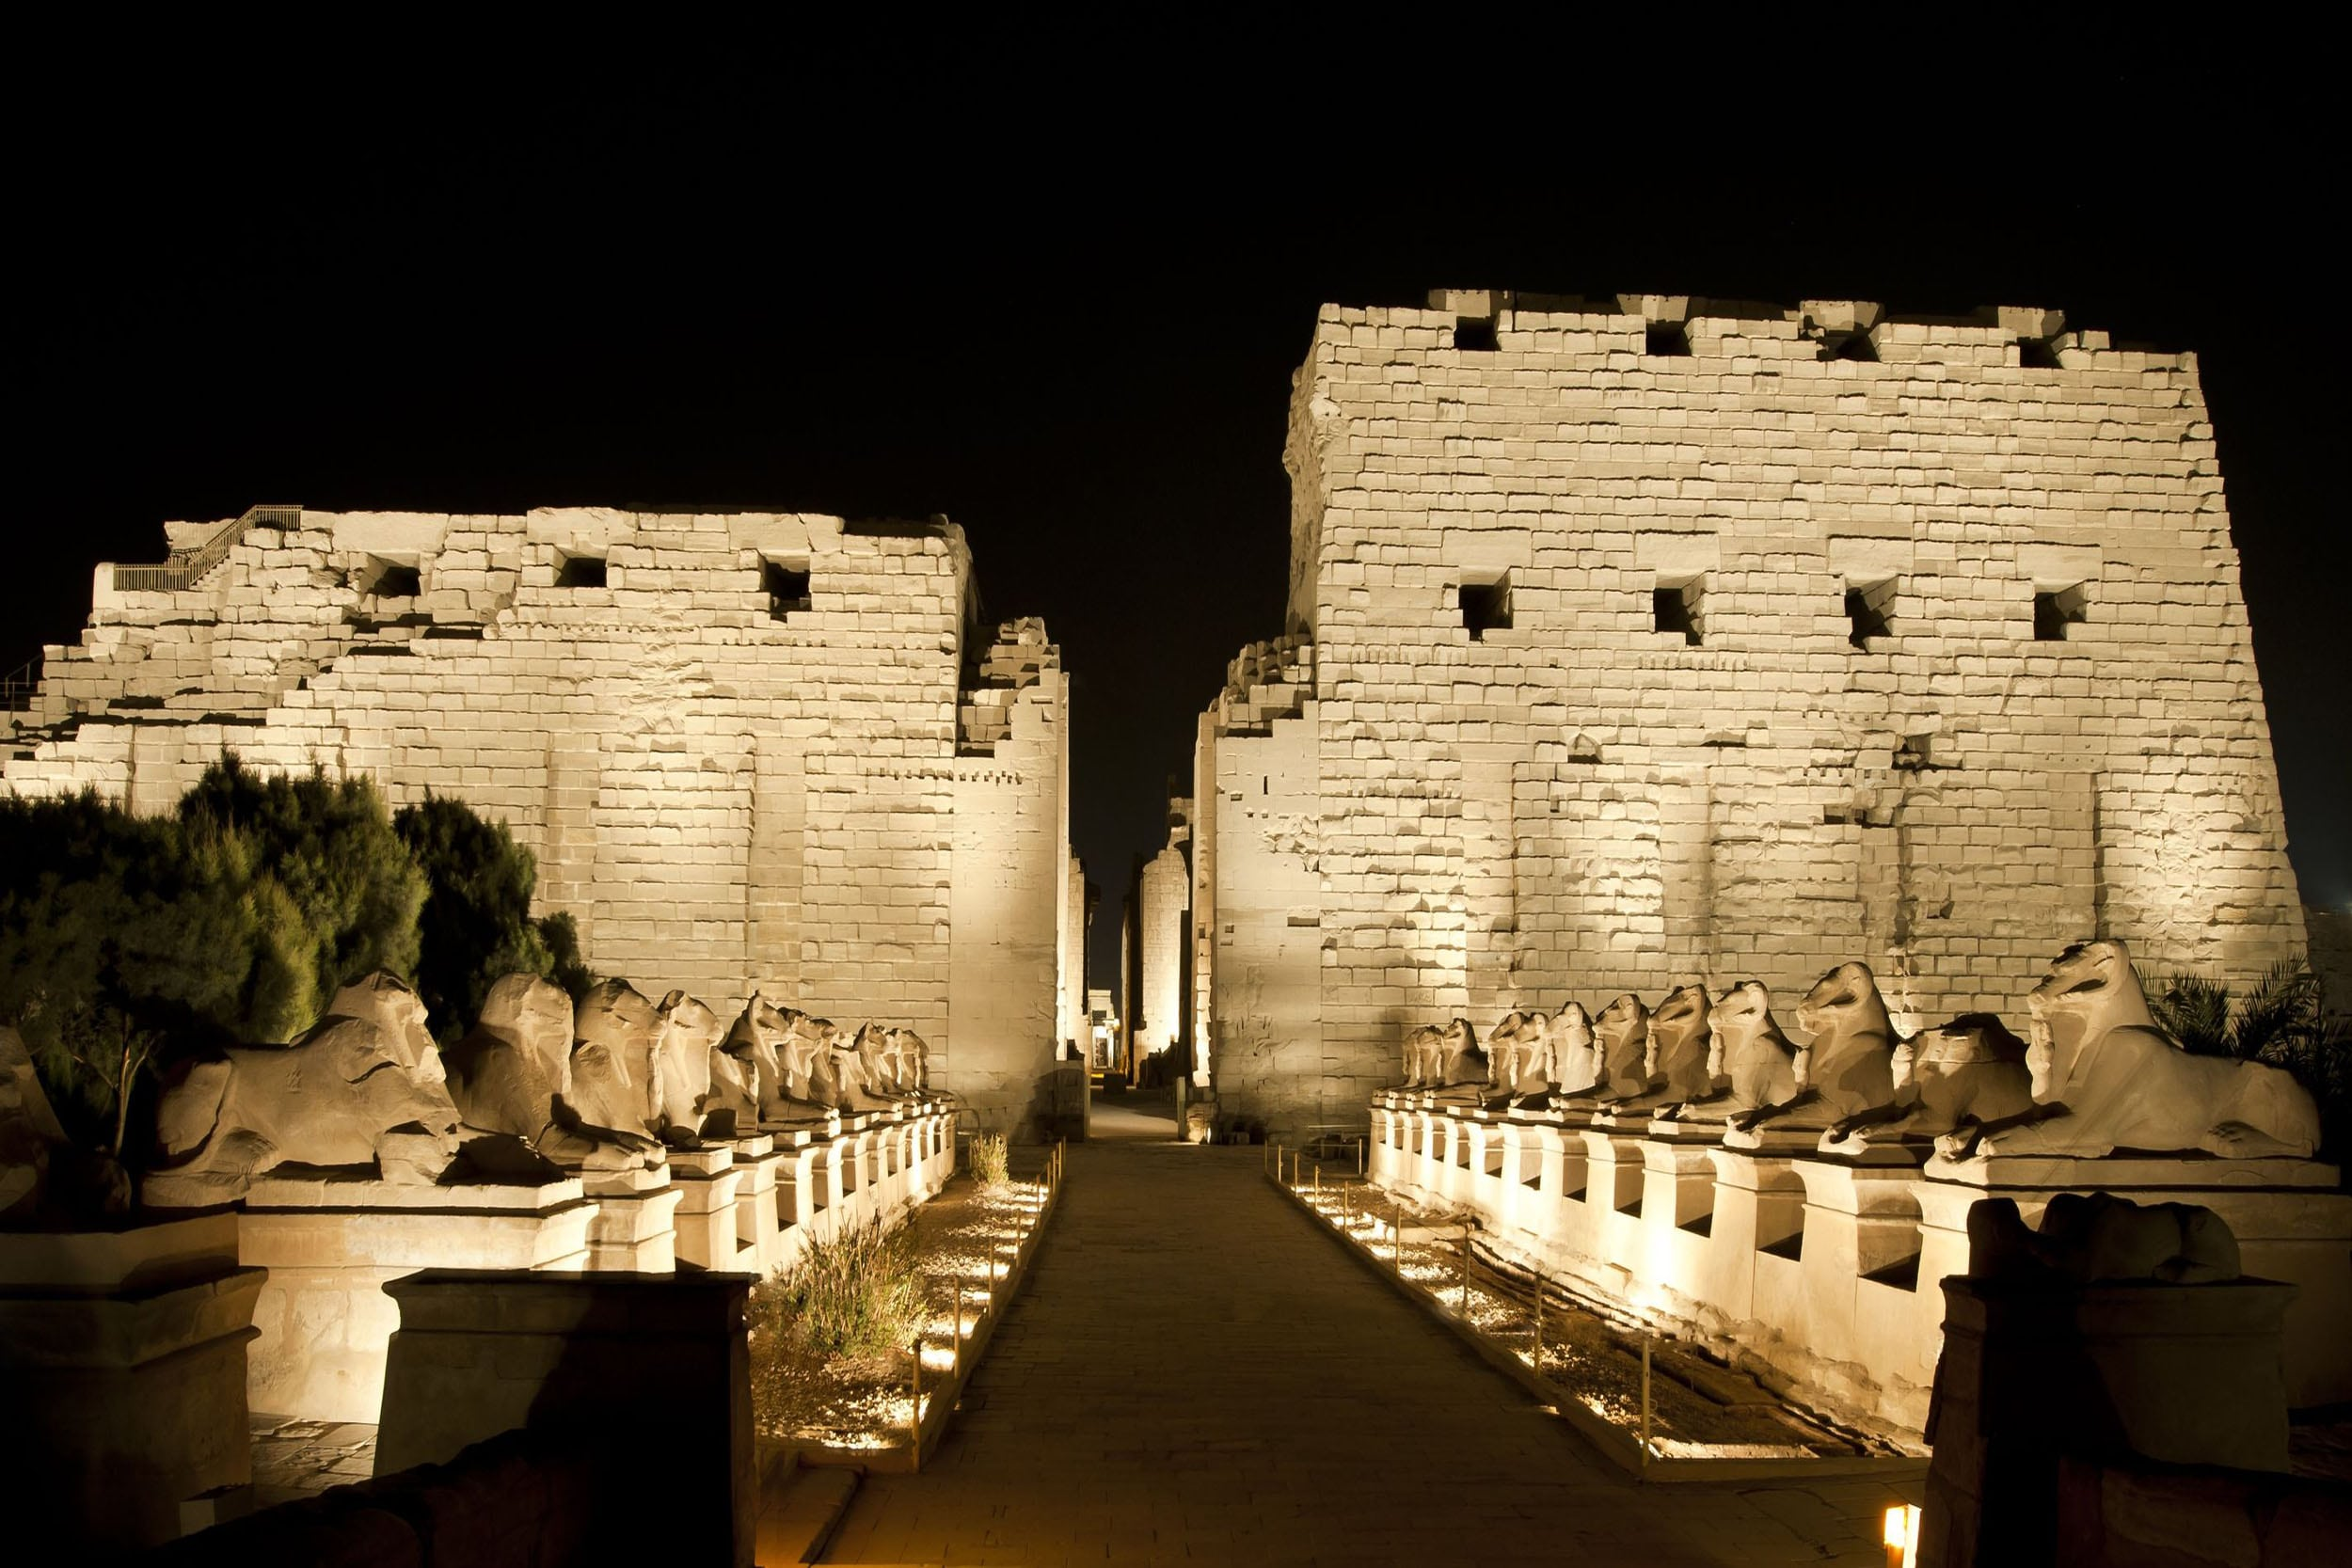 ancient-egyptian-temple-of-karnak-in-luxor-lit-up-at-night